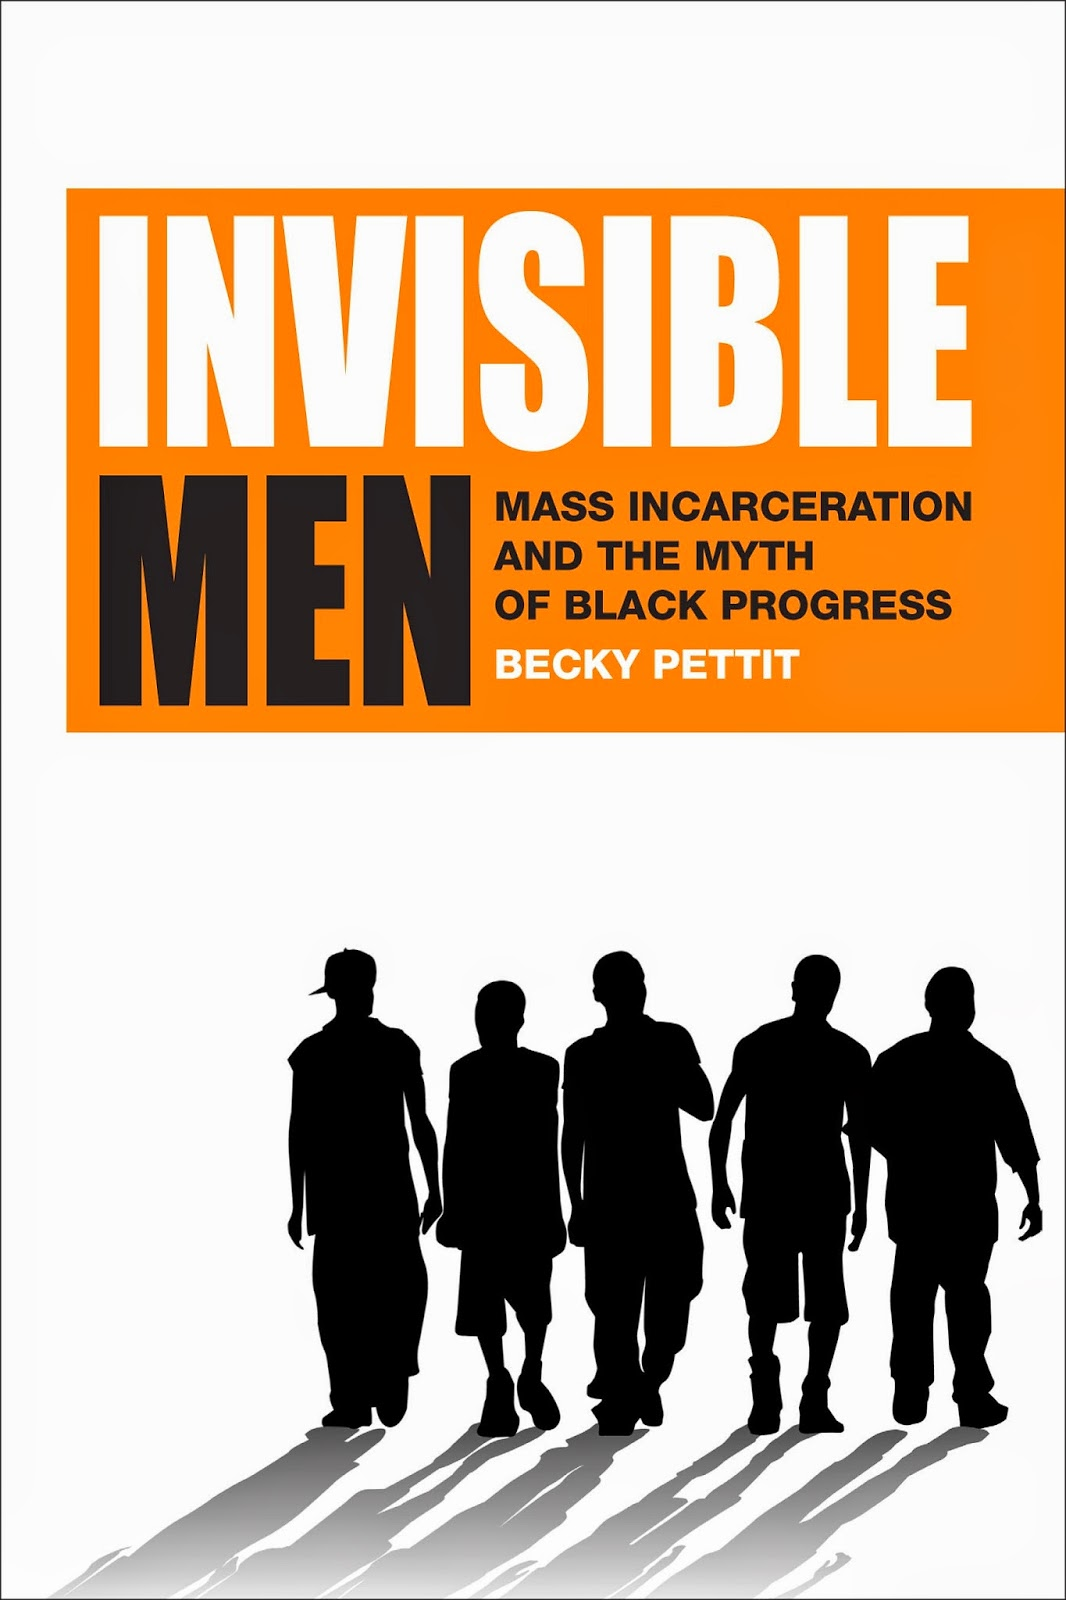 Image book cover: Invisible Men: Mass Incarceration and the Myth of Black Progress by Becky Pettit from https://www.russellsage.org/publications/invisible-men